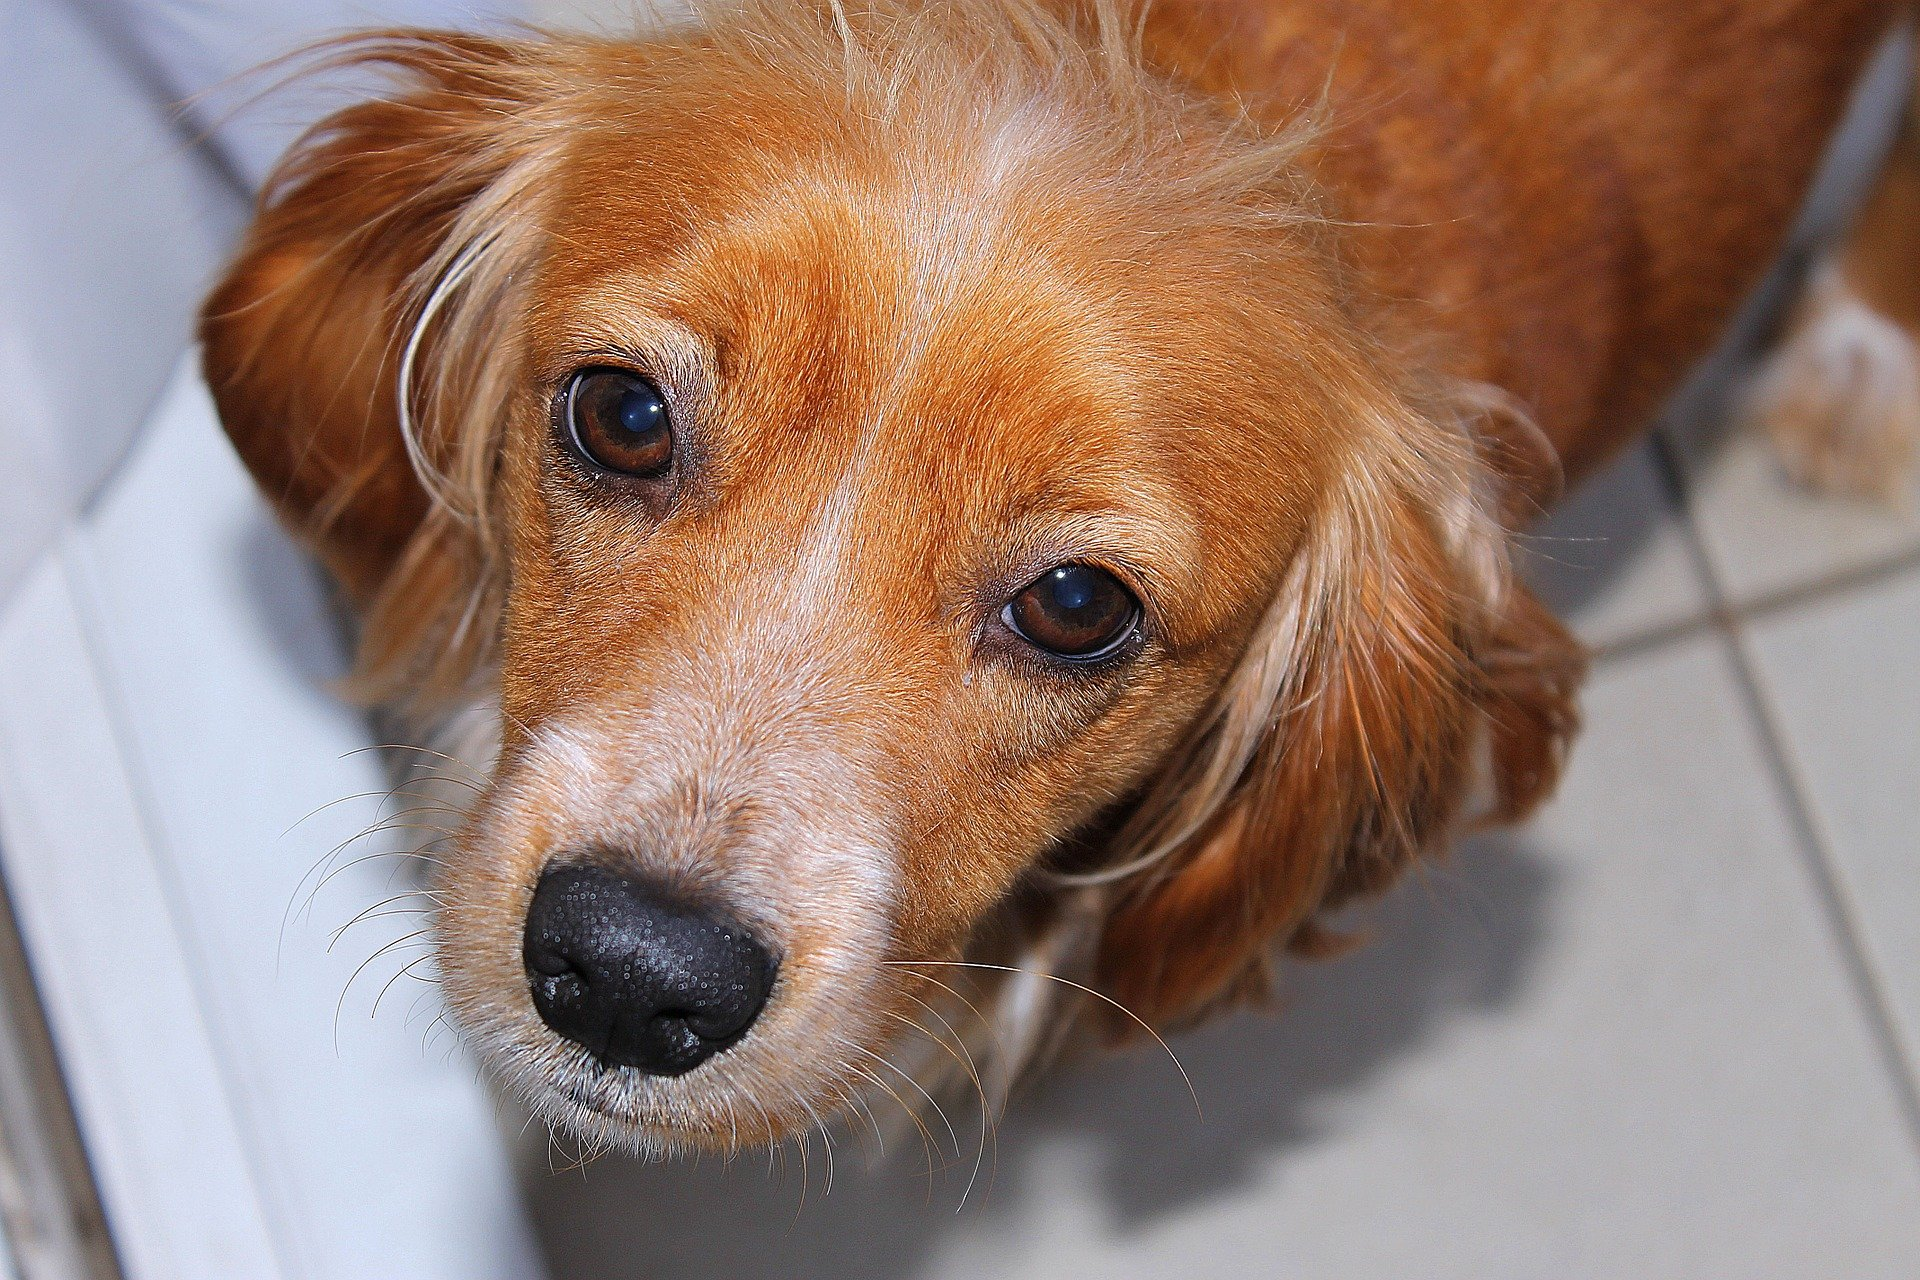 Dog diseases: Toxoplasmosis in dogs, symptoms and treatment